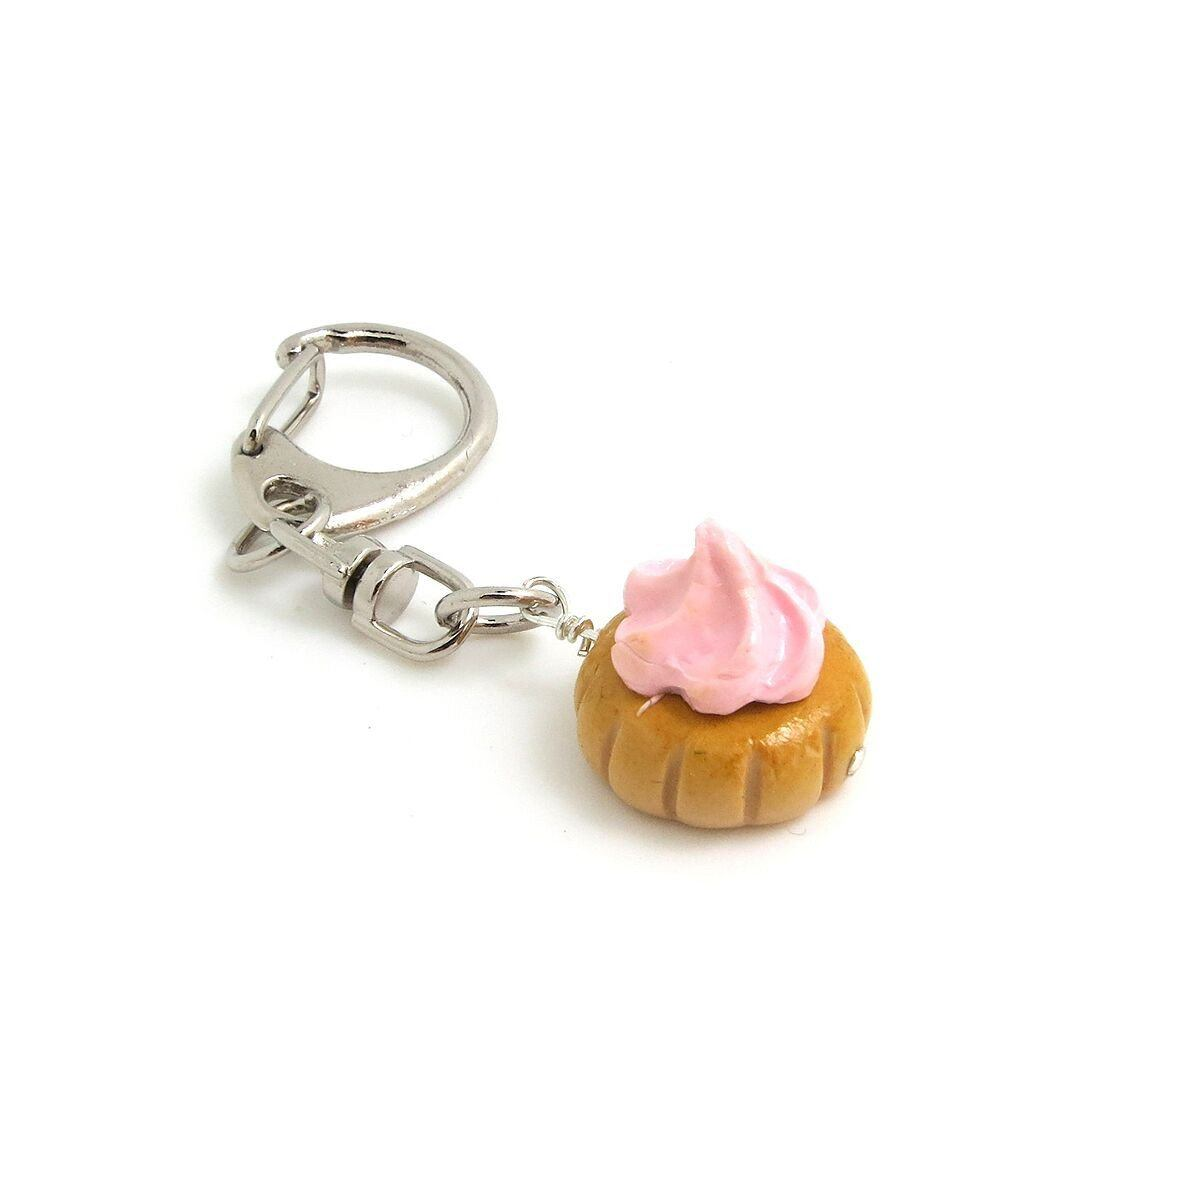 Giant Gem Keychains Local Keychains thepigbakesclay Pastel Pink